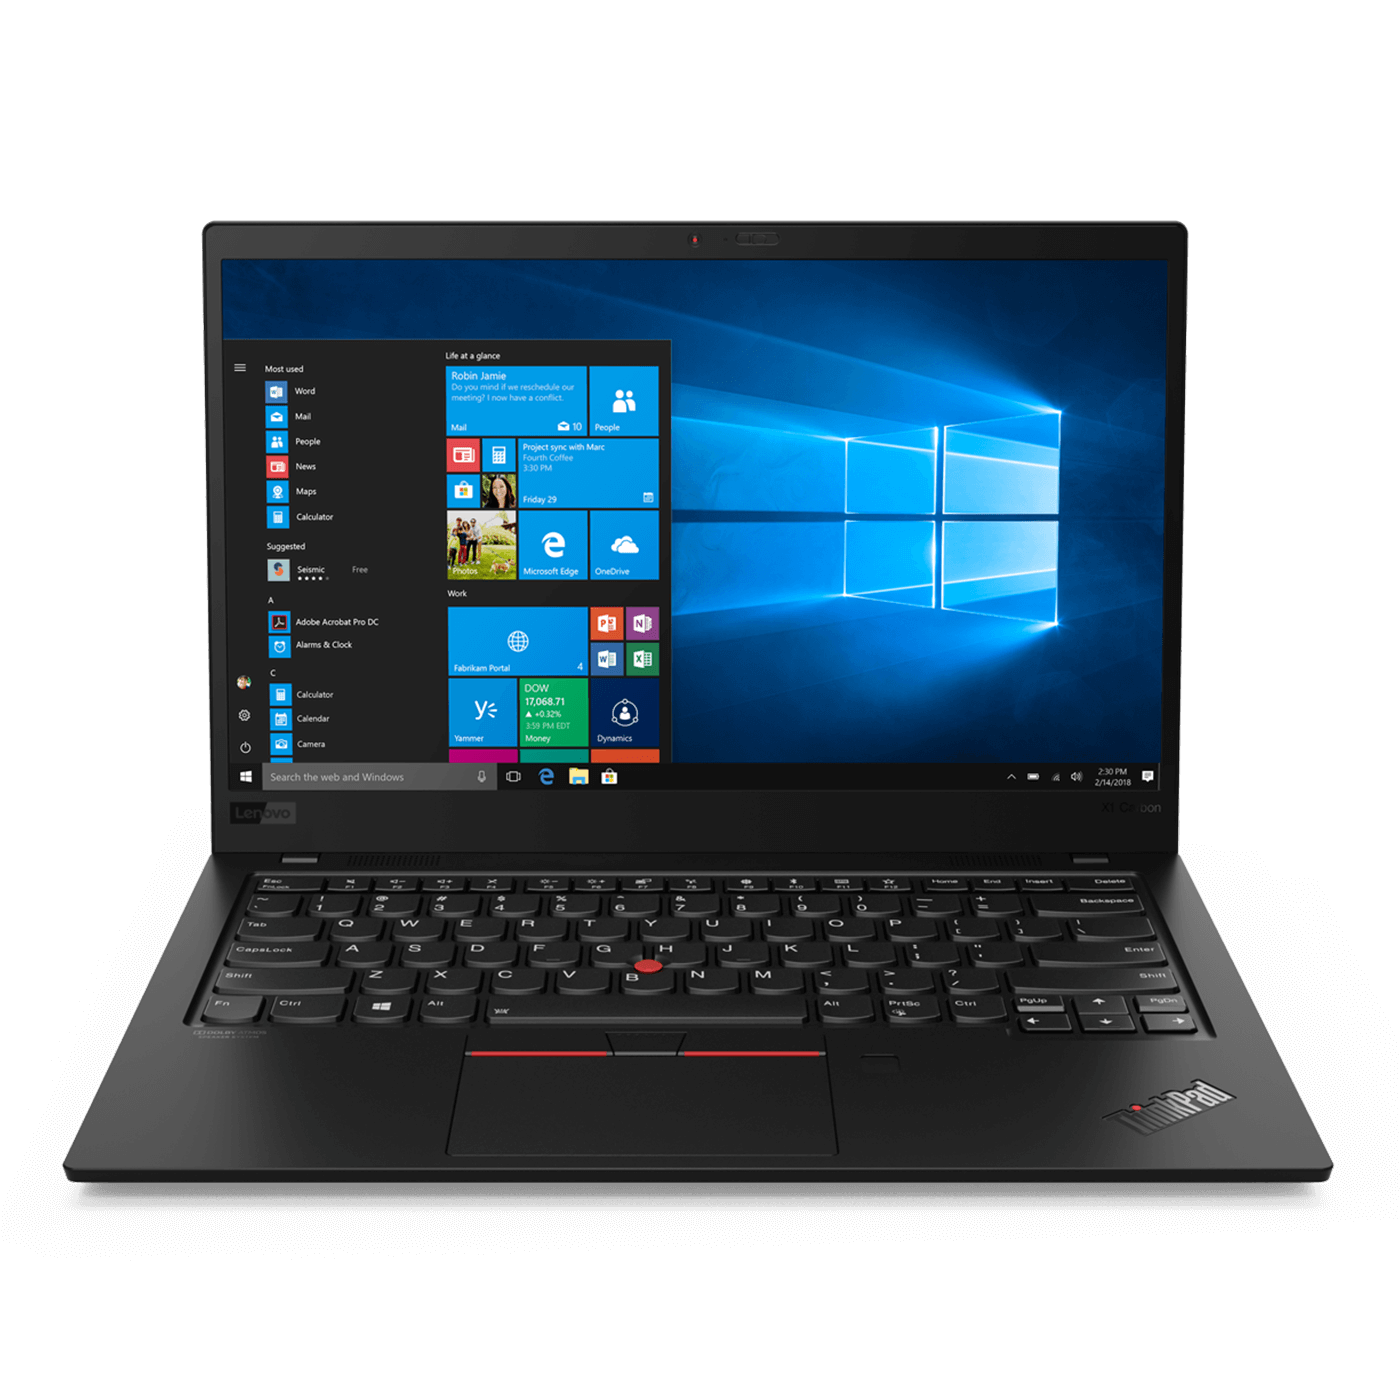 ThinkPad X1 Carbon - ブラック